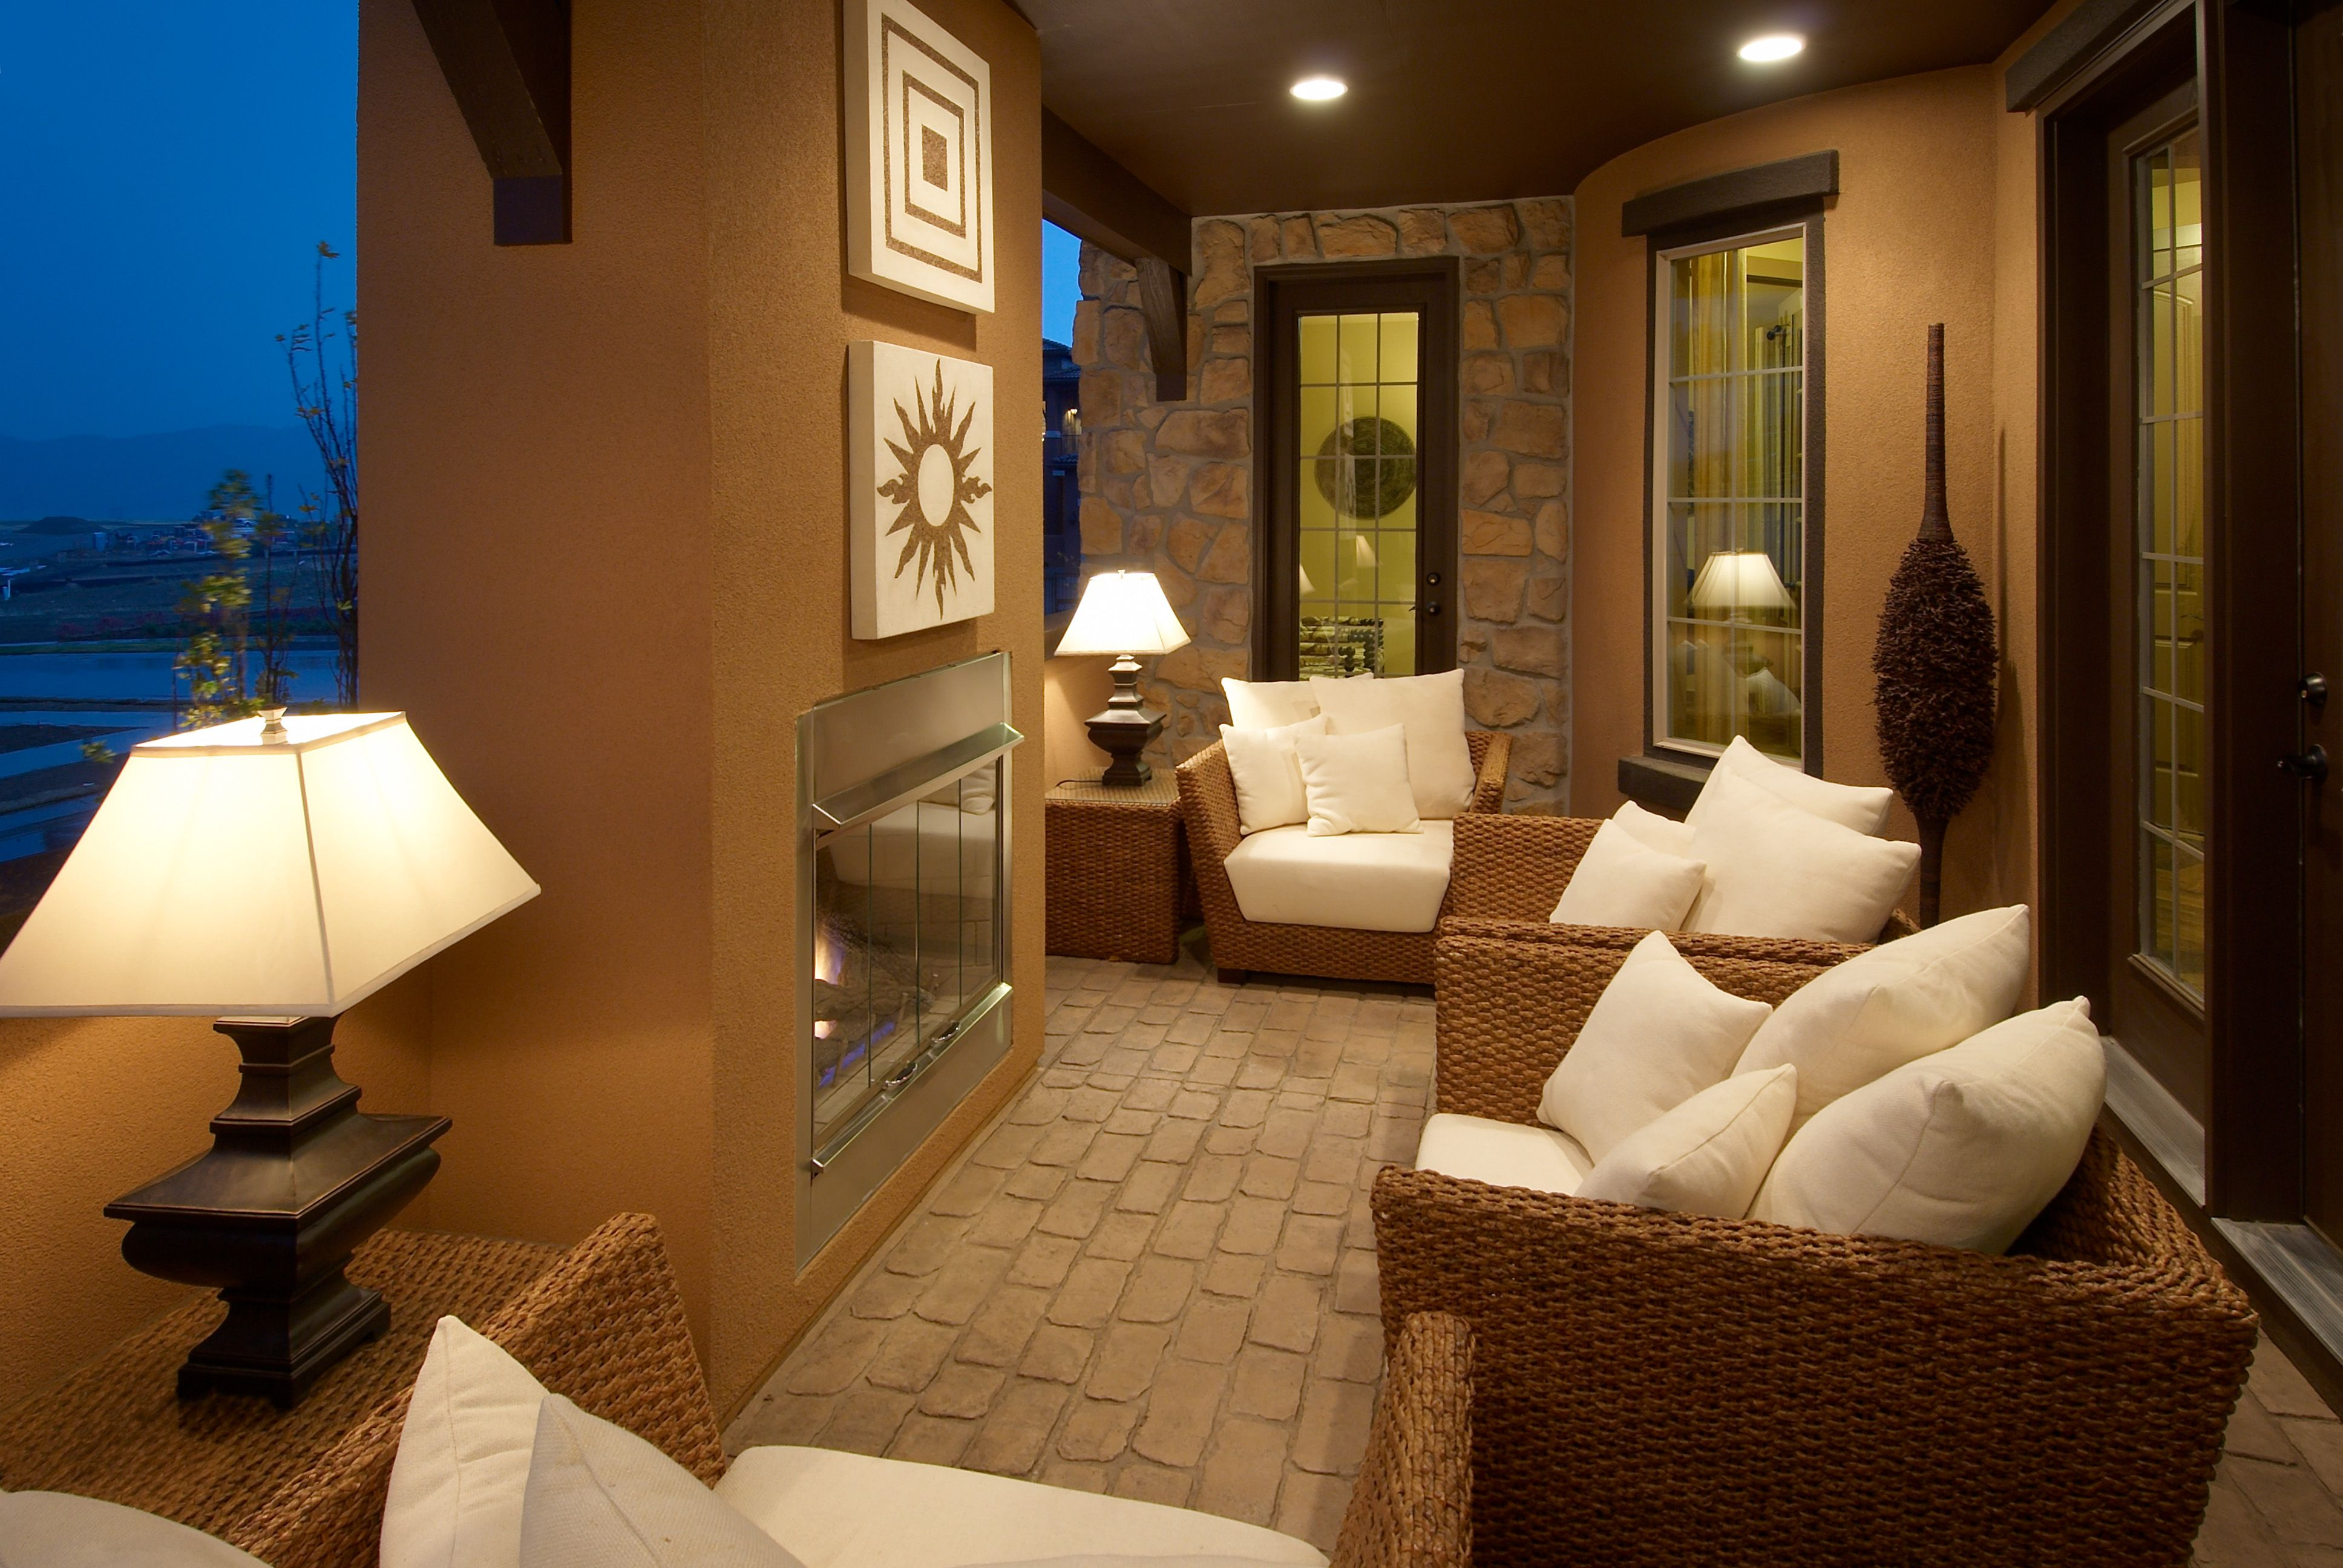 Great outdoor fireplace and space